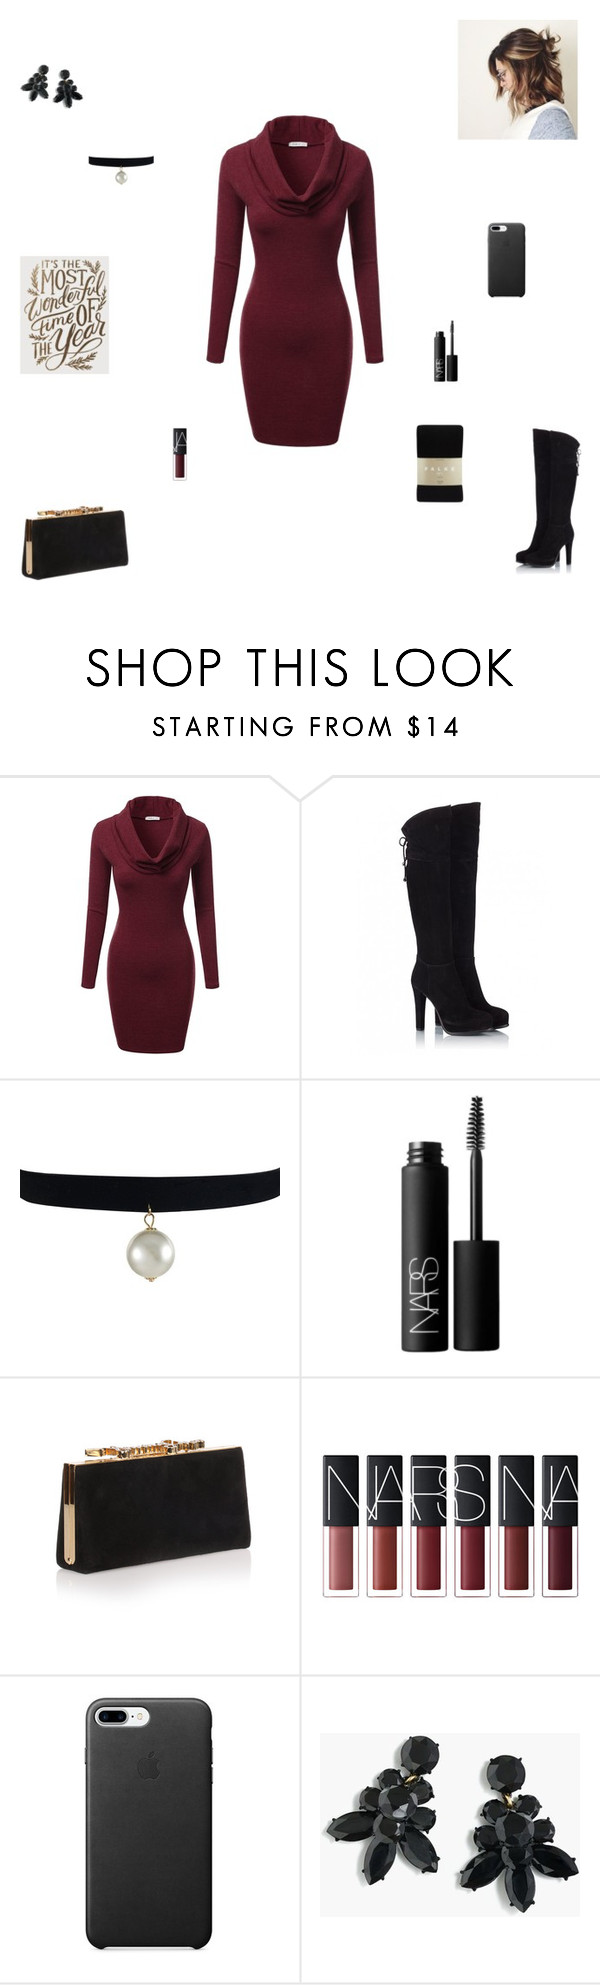 """""""it's the most wonderful time of the year"""" by synclairel ❤ liked on Polyvore featuring J.TOMSON, Fratelli Karida, NARS Cosmetics, Jimmy Choo, J.Crew and Falke"""